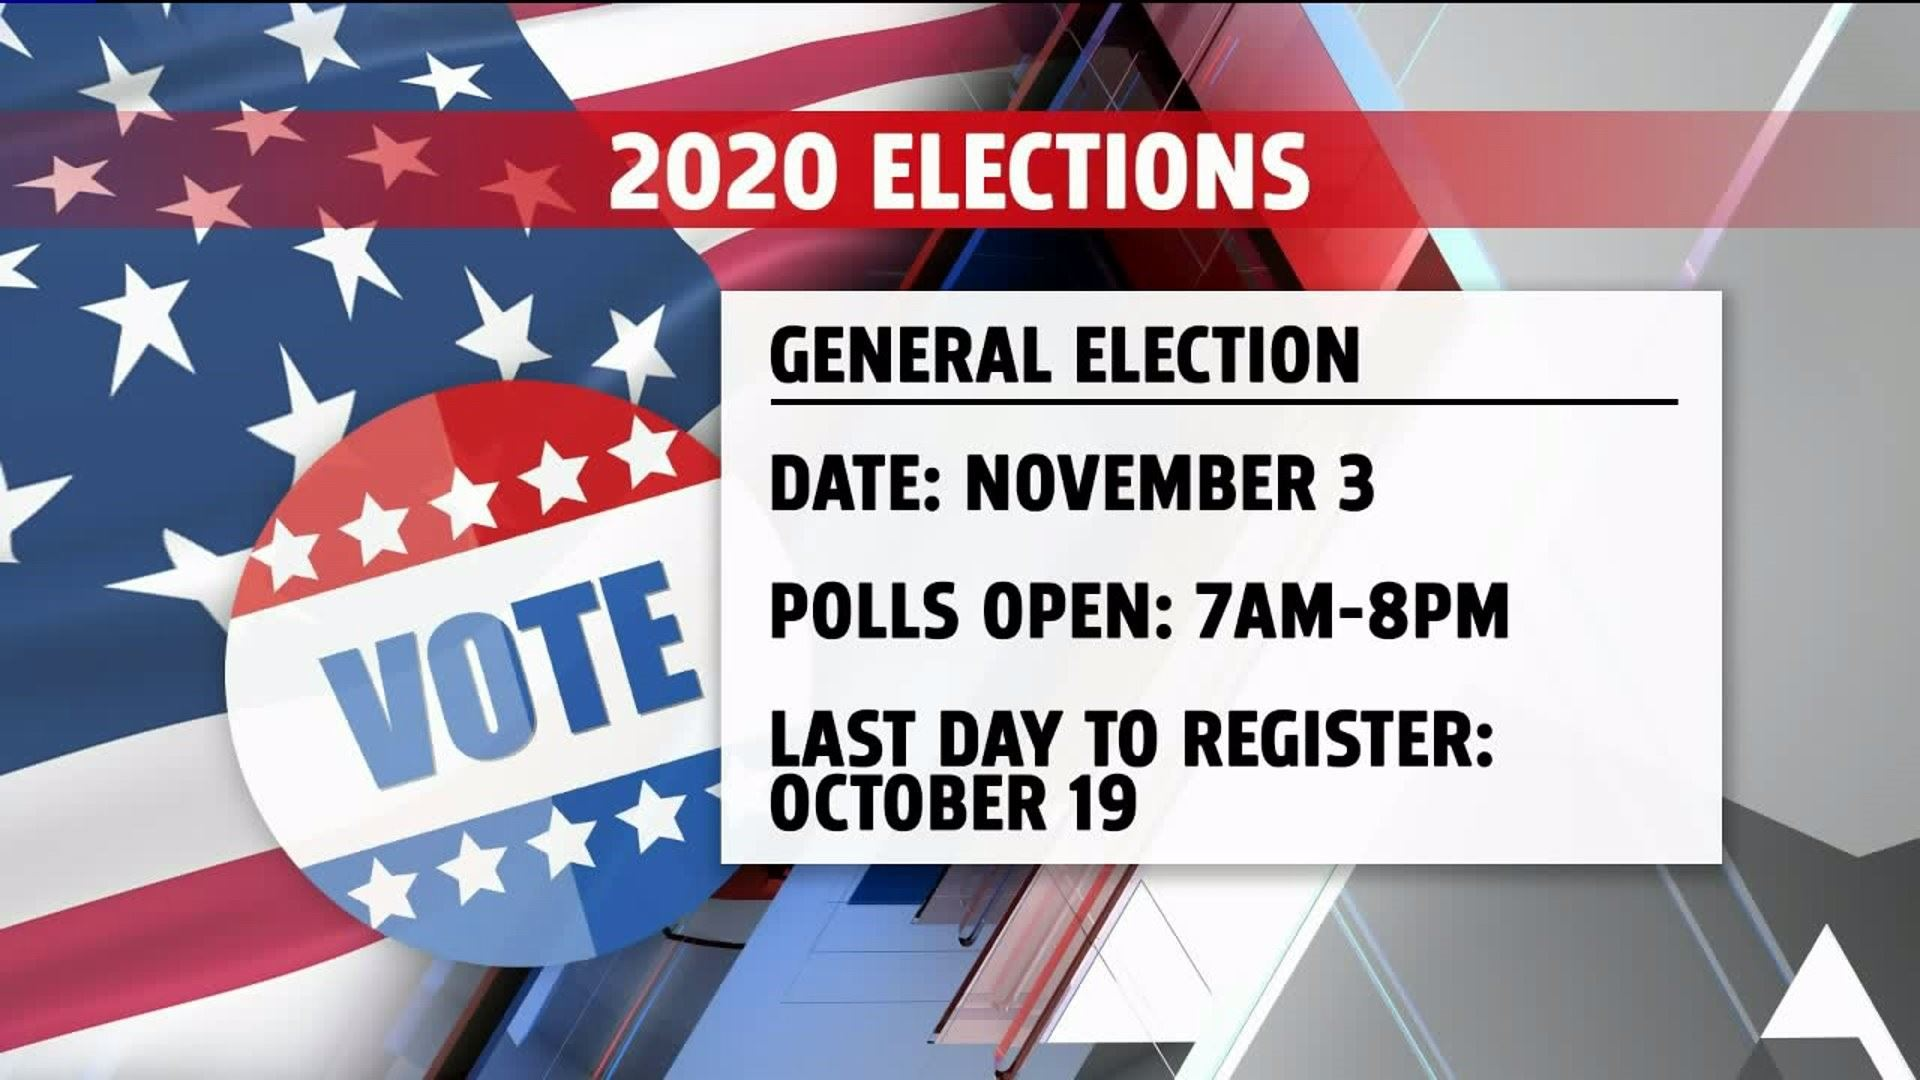 2020 Elections Date and voting info